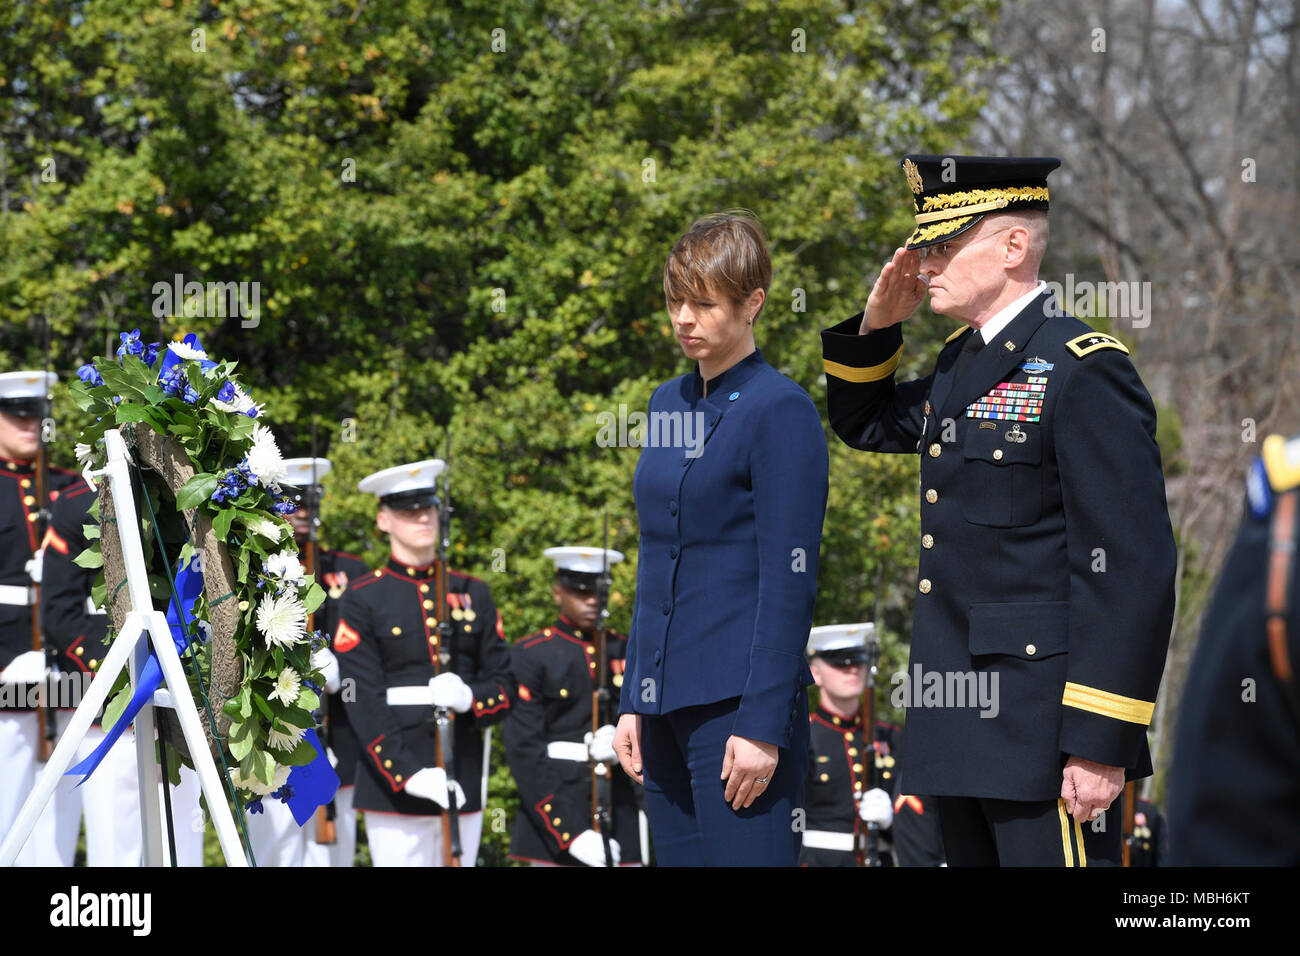 U.S. Army Maj. Gen. Michael L. Howard, commanding general, Joint Force Headquarters - National Capital Region and the U.S. Army Military District of Washington and Kersti Kaljulaid, President of Estonia, renders honor during an Armed Forces Full Honor Wreath Laying Ceremony at the Tomb of the Unknown Soldier, in Arlington National Cemetery, Va., April 4, 2018. Stock Photo